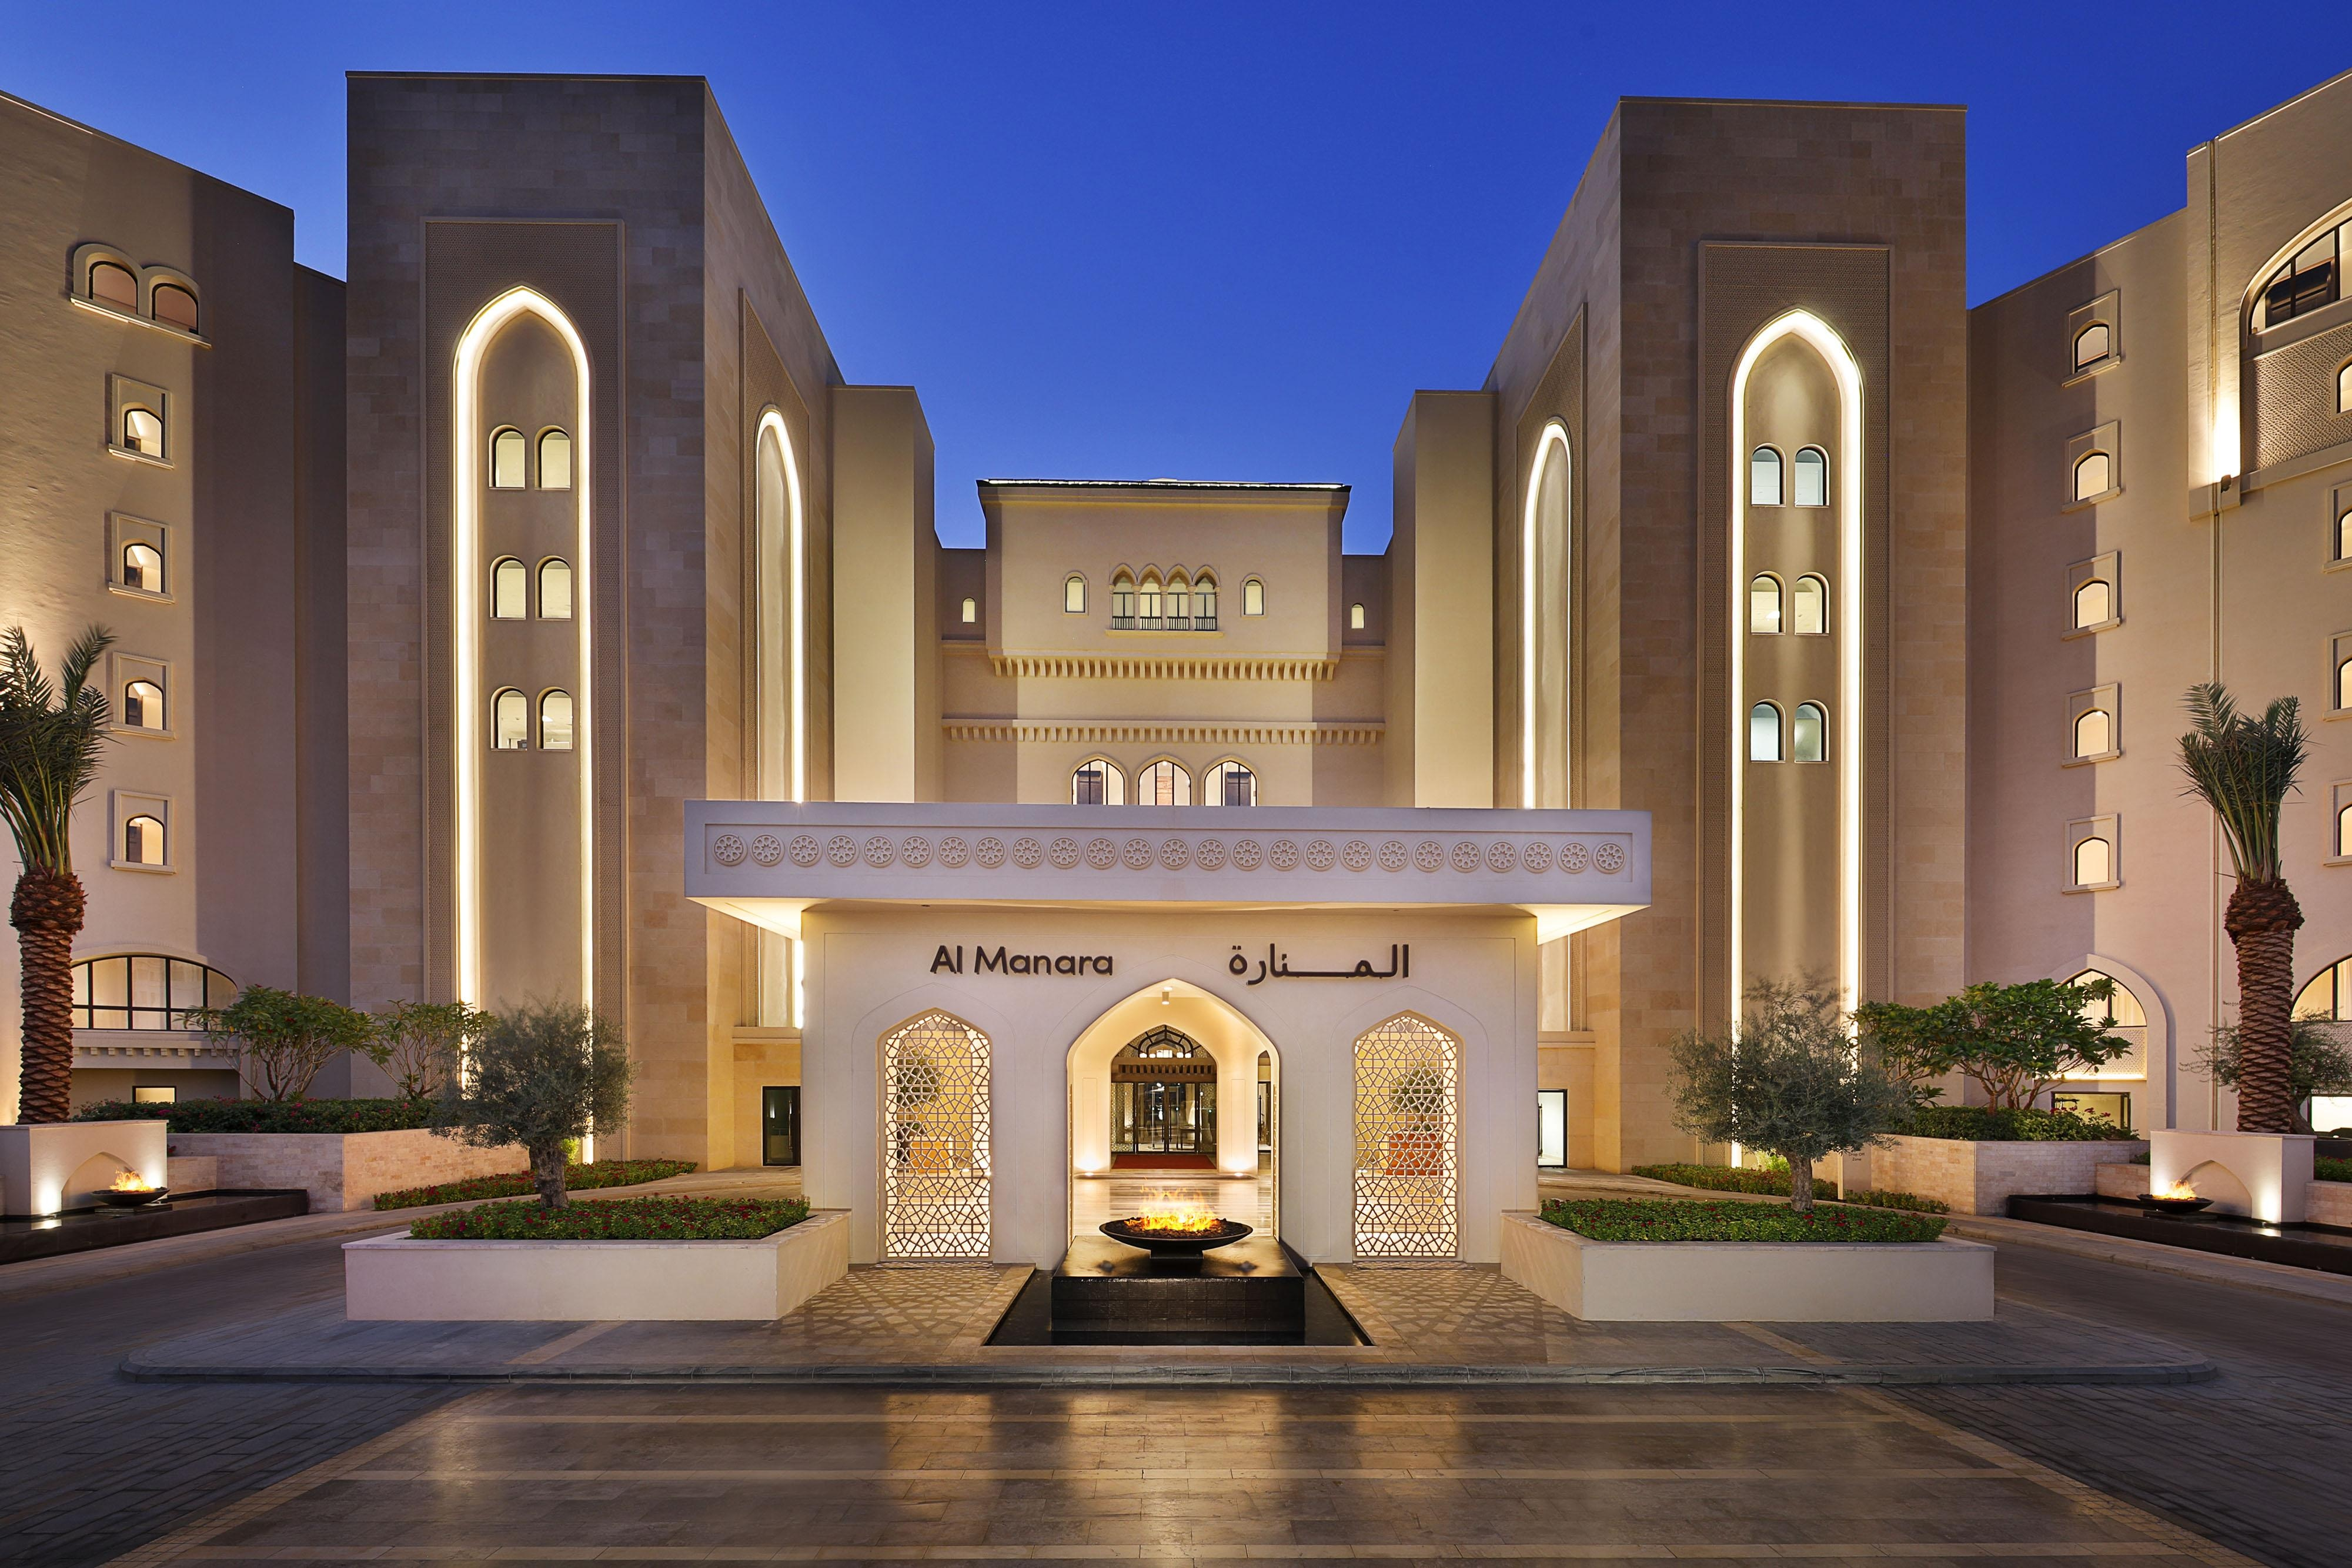 An intimate retreat of design and history, Al Manara Hotel combines the finest of beach holiday and city getaway.